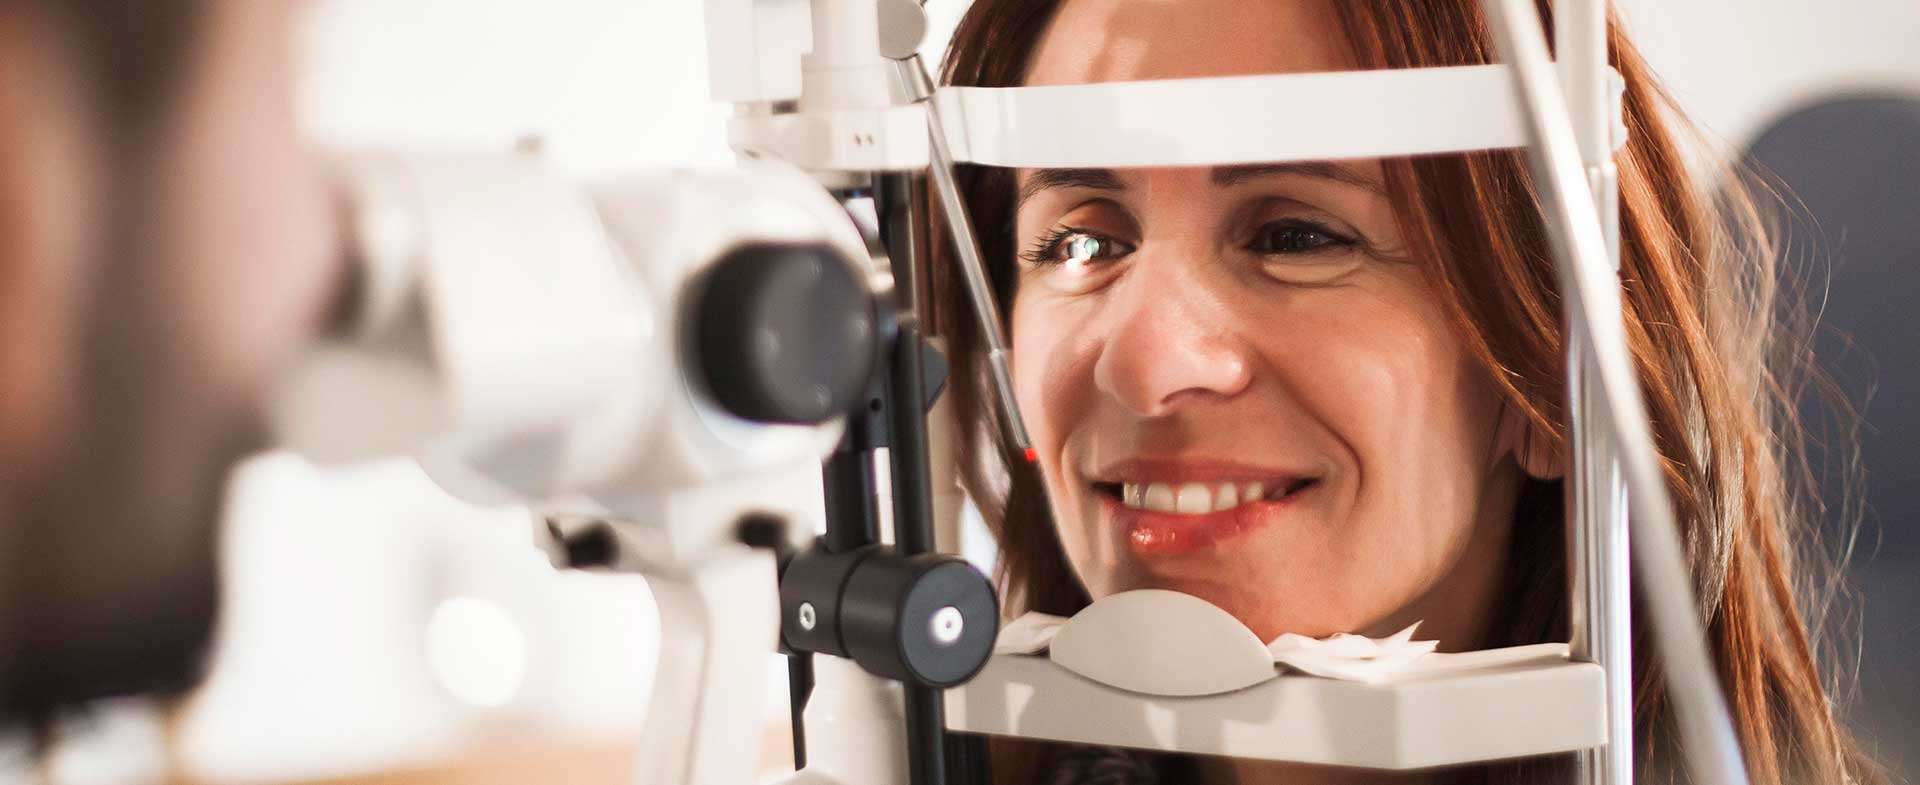 Woman over age 40 getting an eye exam